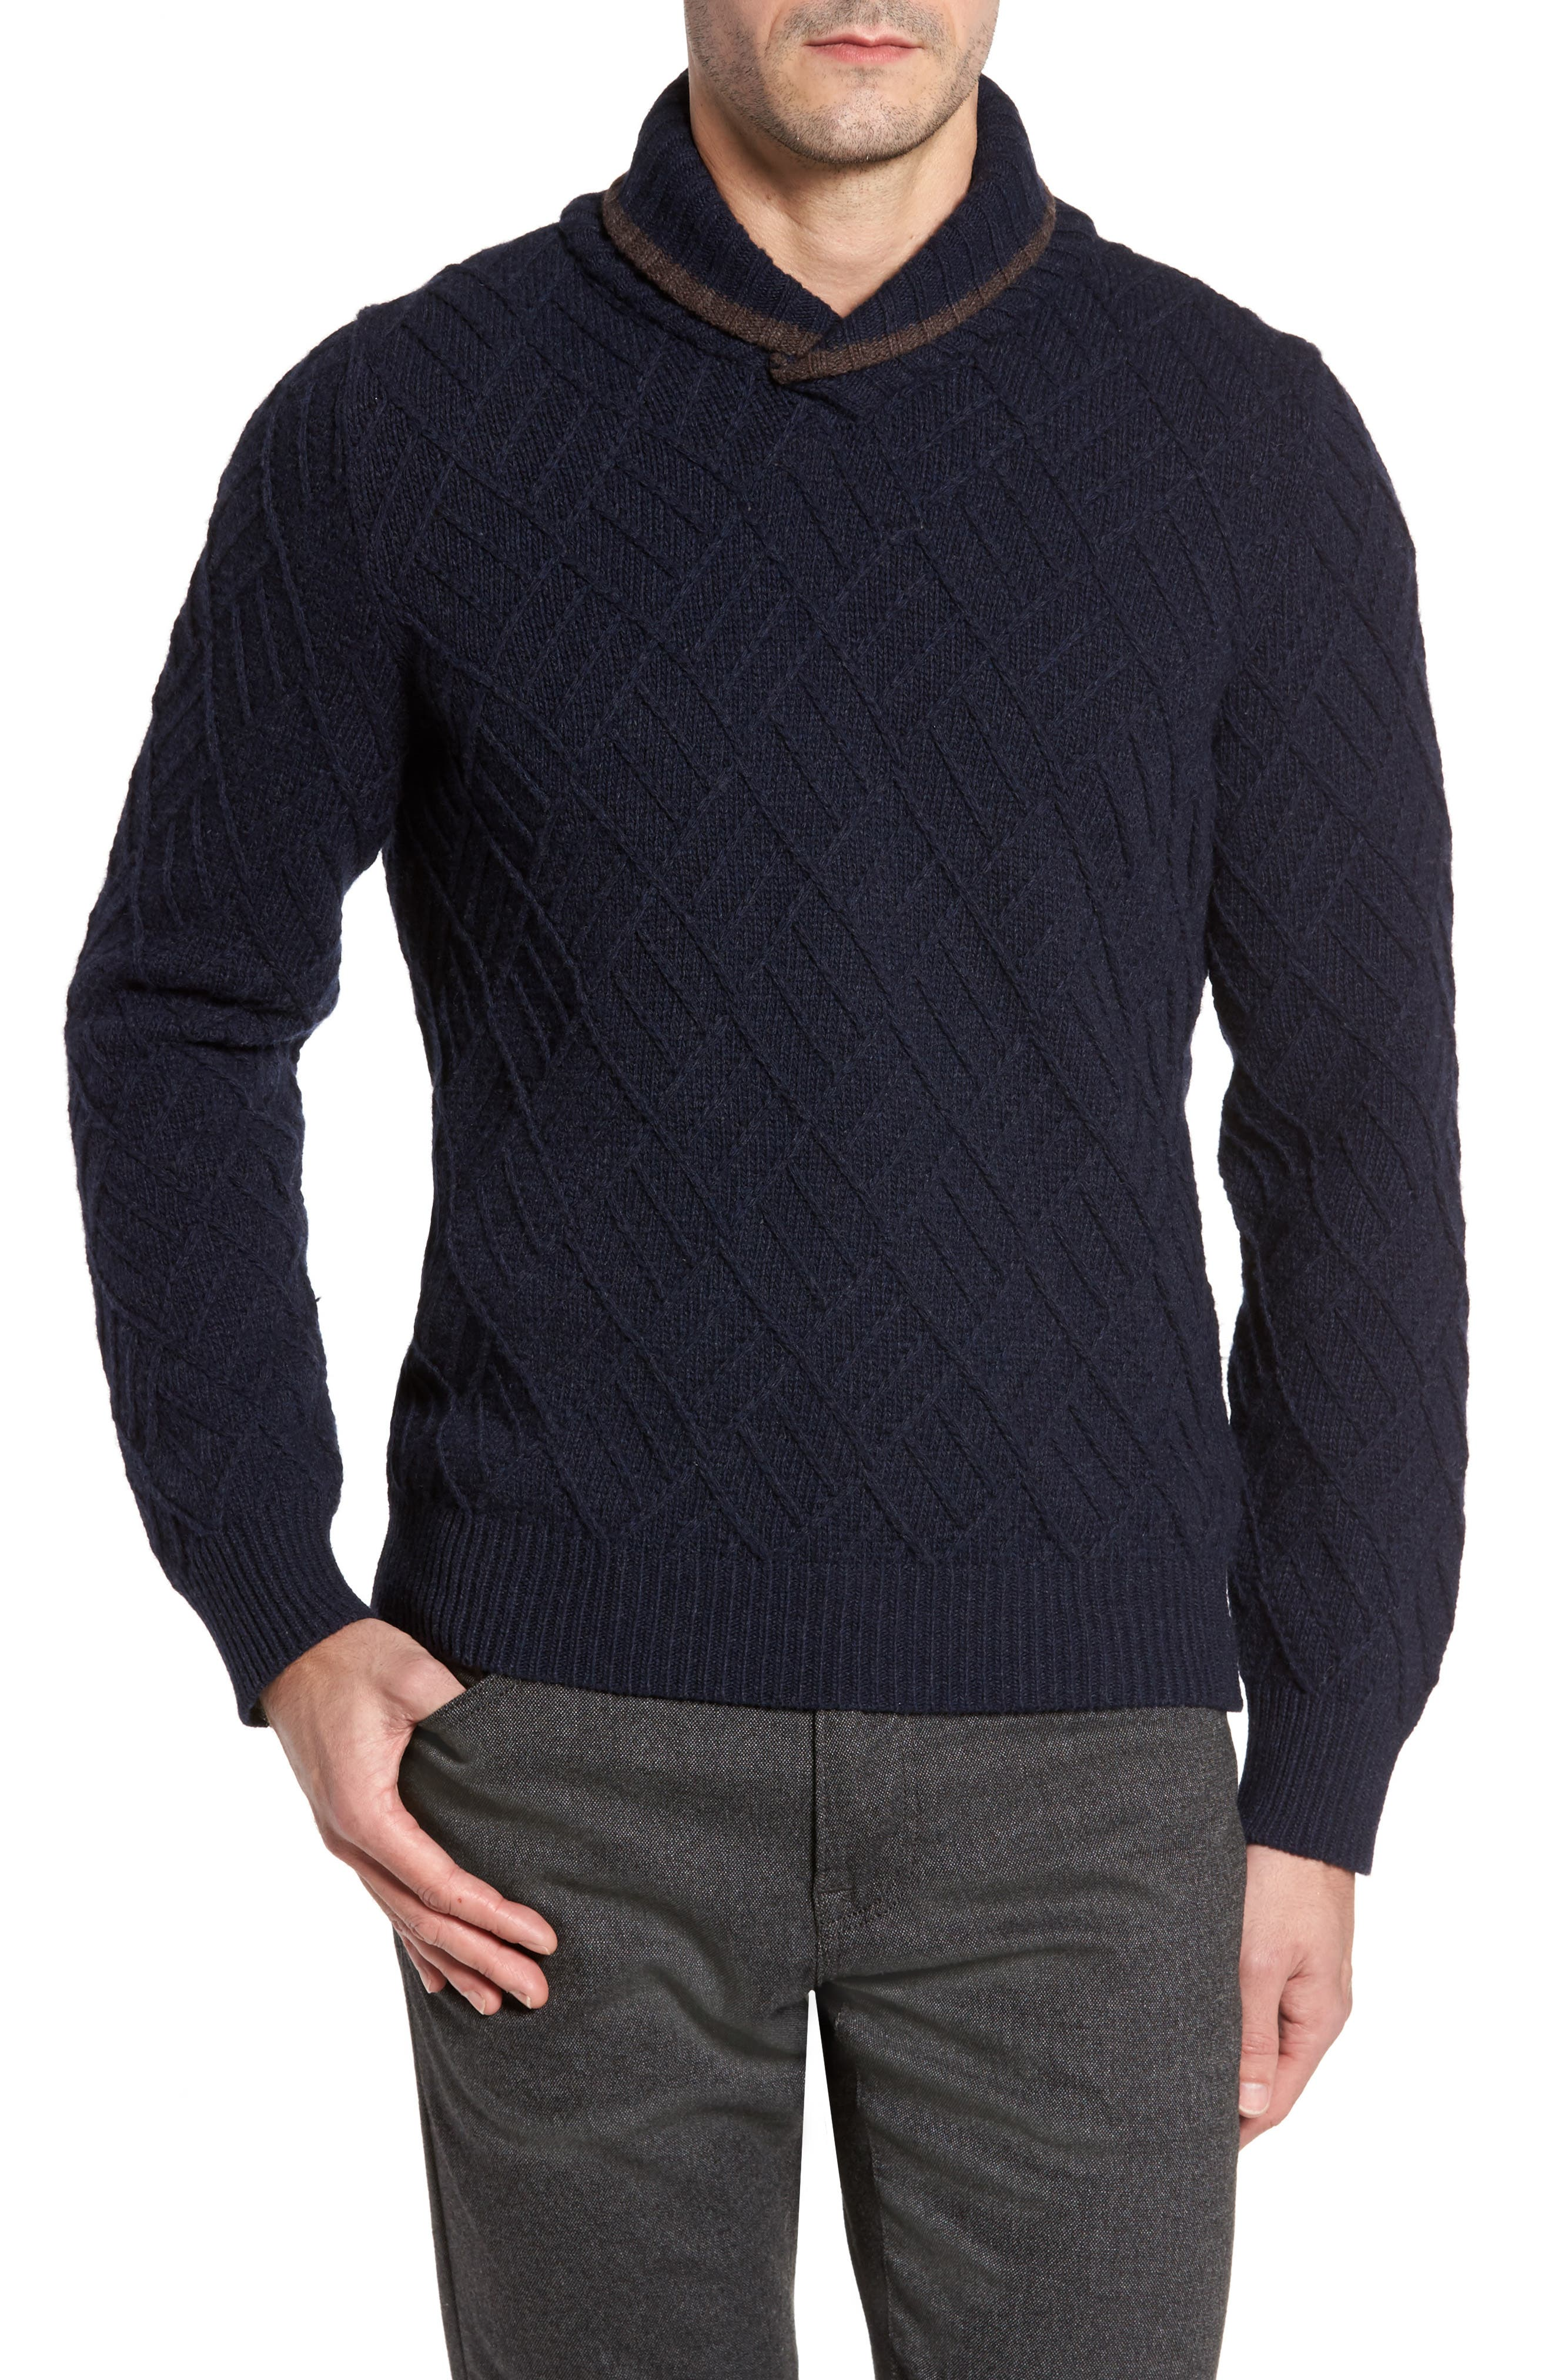 Alternate Image 1 Selected - Luciano Barbera Textured Wool Sweater